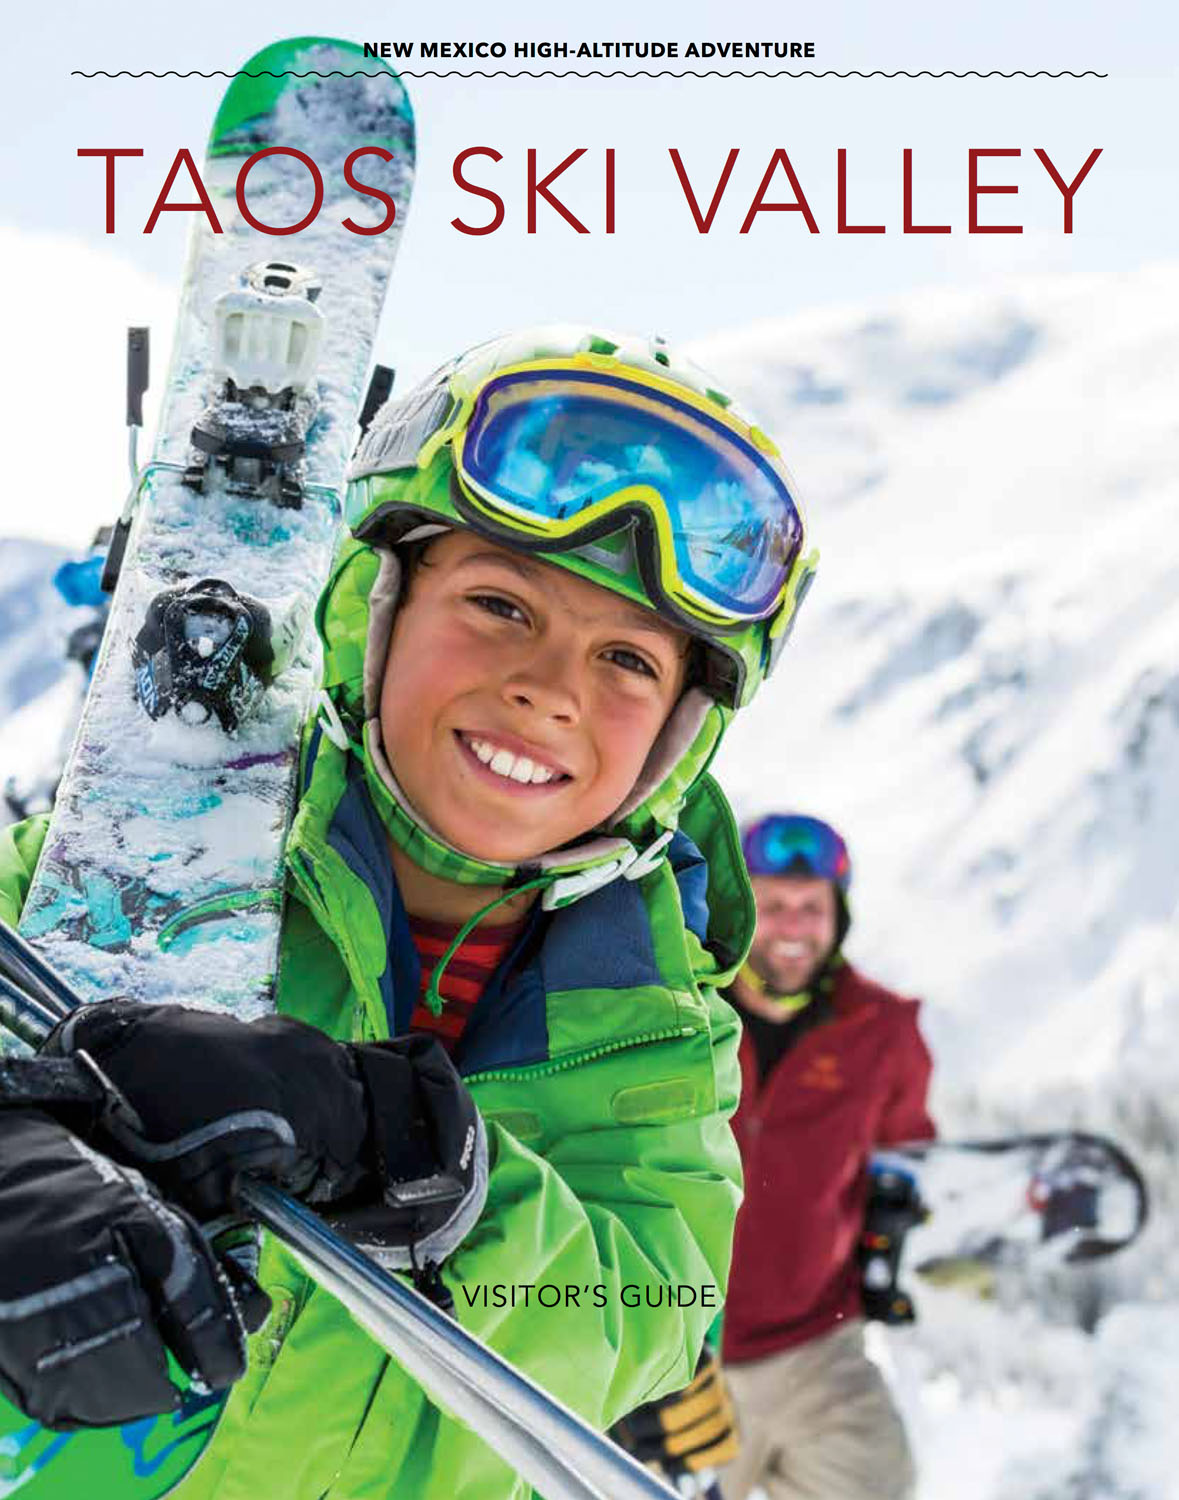 Taos Ski Valley 2015 Visitor Guide Photographer M DeYoung